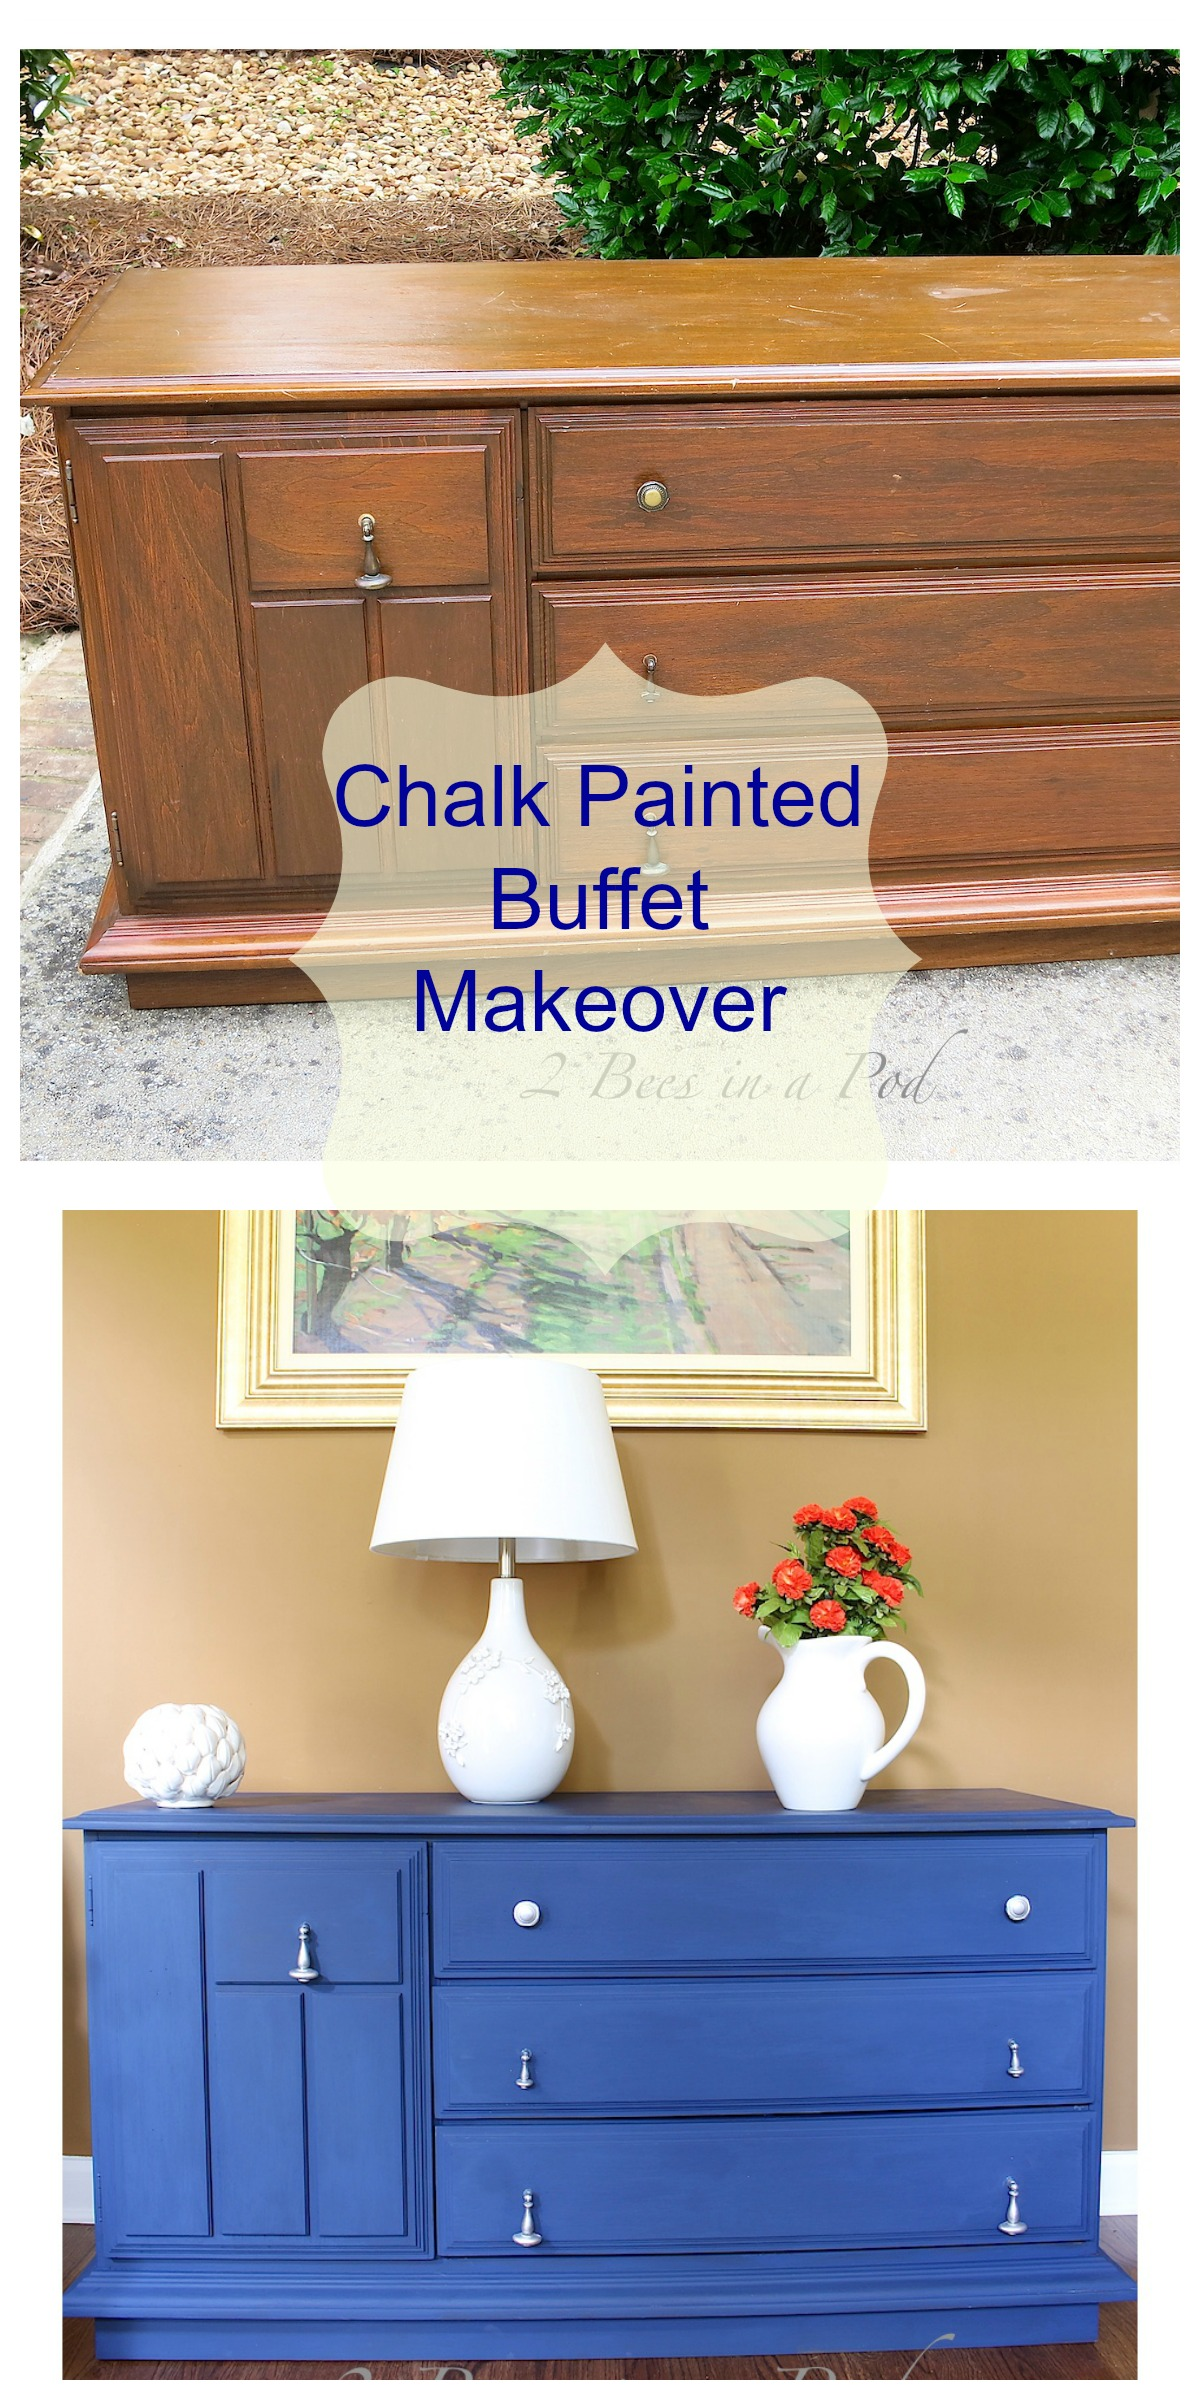 Painted Furniture Annie Sloan Chalk Paint Buffet Makeover In Napoleonic Blue